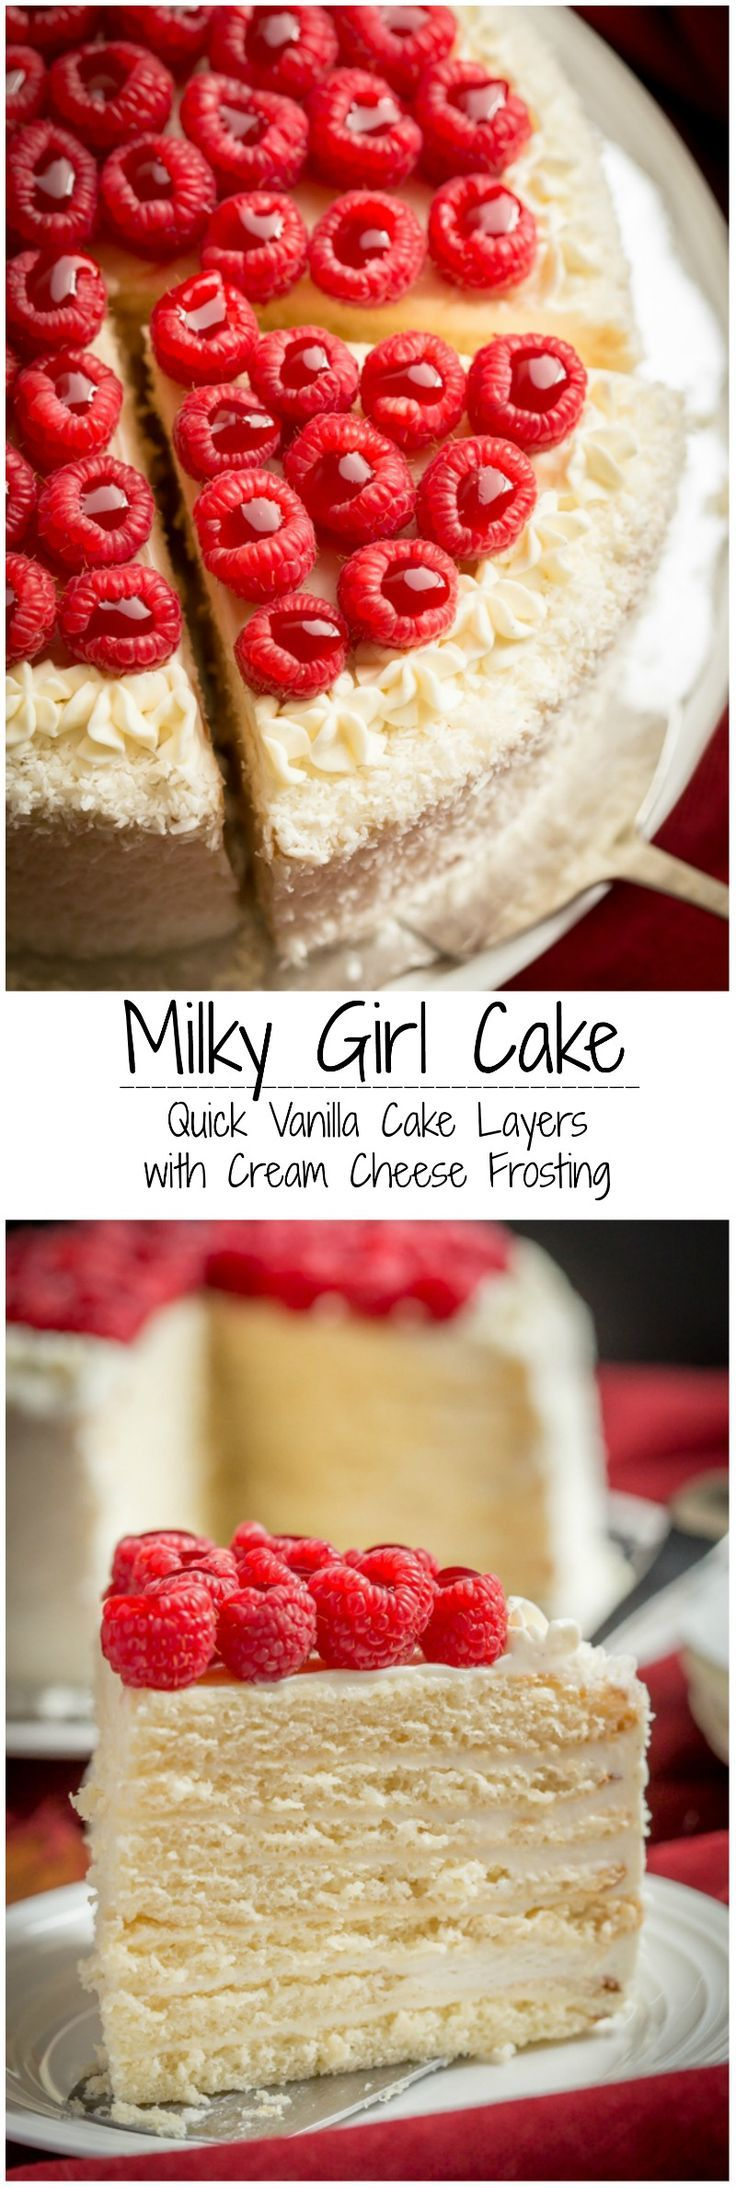 Quick and easy, with tender sweetened condensed milk cake layers, frosted with Vanilla Cream Cheese Frosting - and all made in under 1 hour! | By Let the Baking Begin!